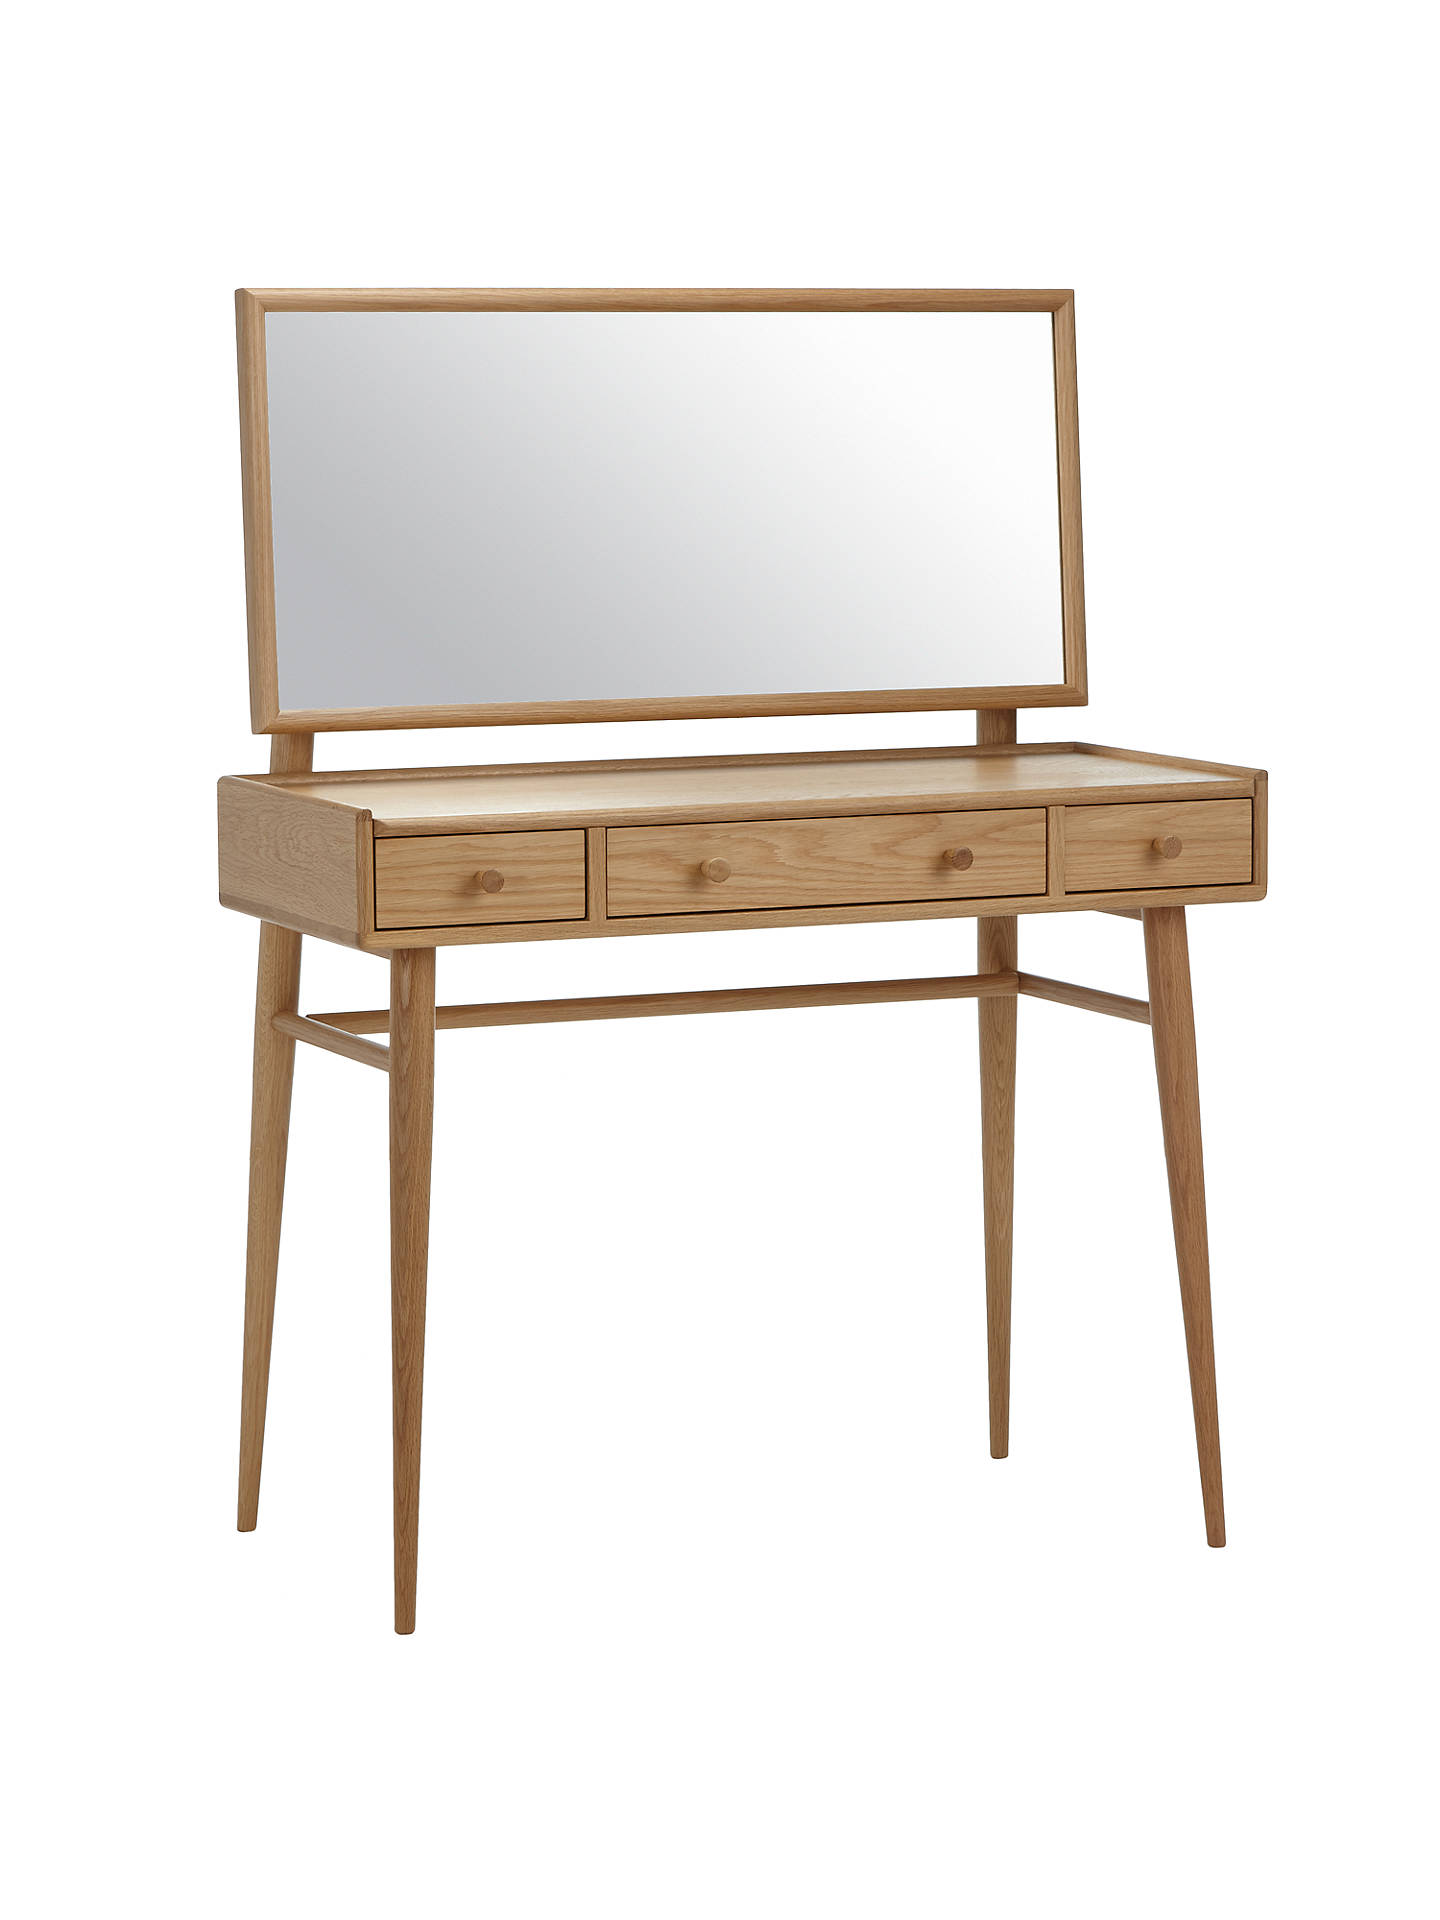 Buyercol for John Lewis Shalstone Dressing Table Online at johnlewis.com